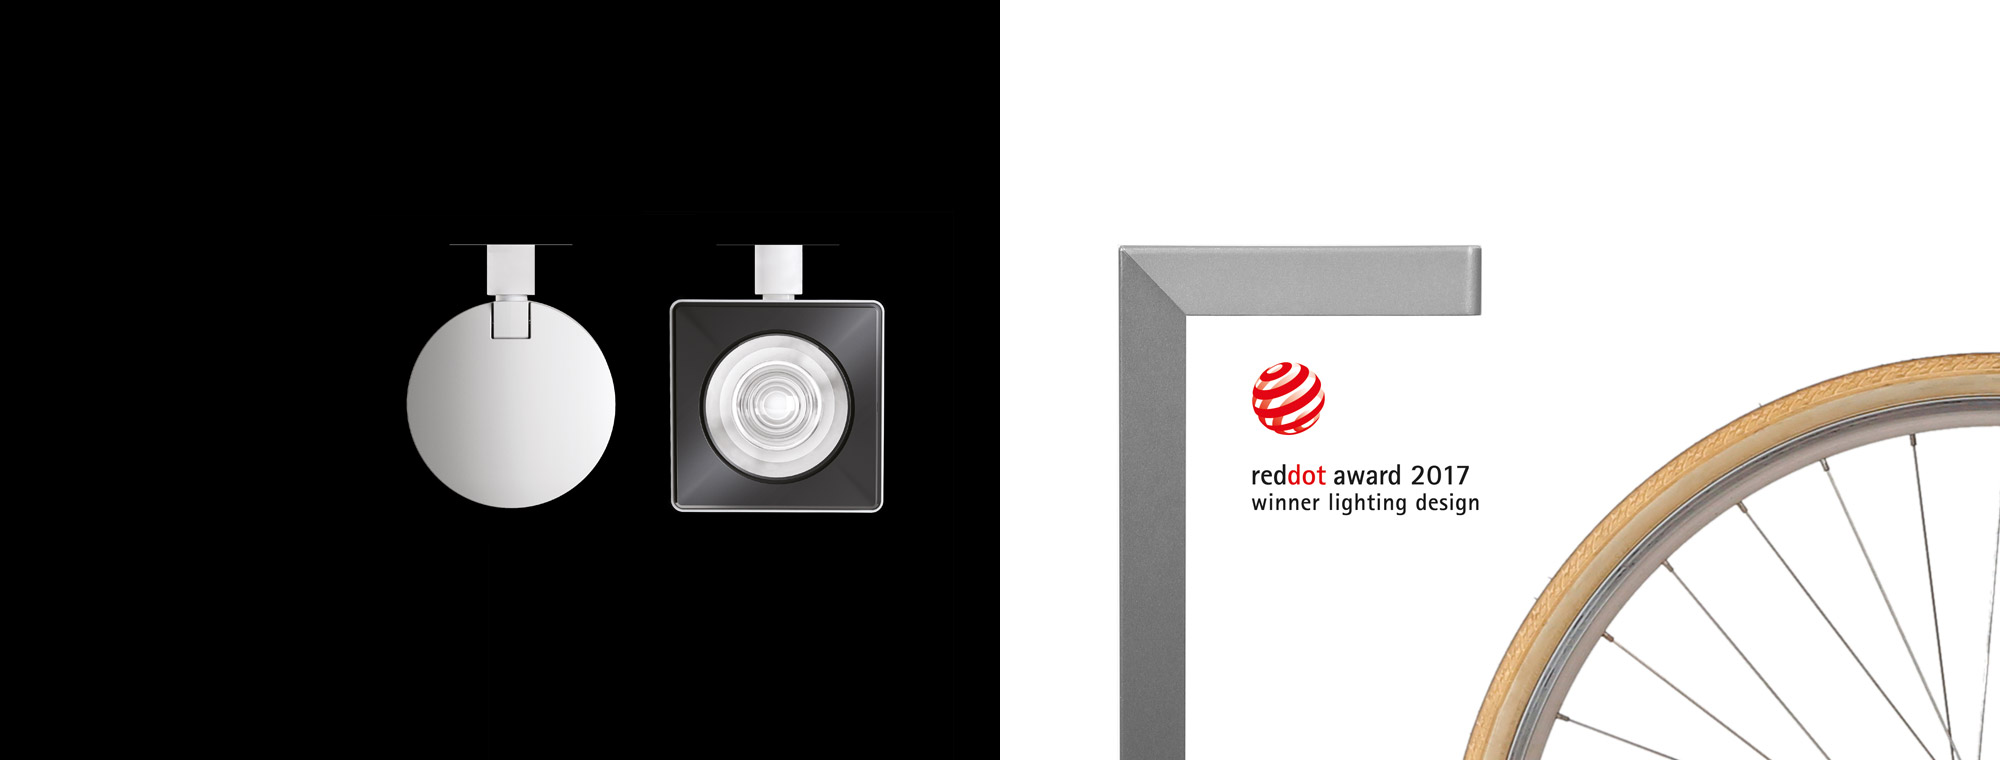 View e Lander vincitori del Premio Red Dot 2017